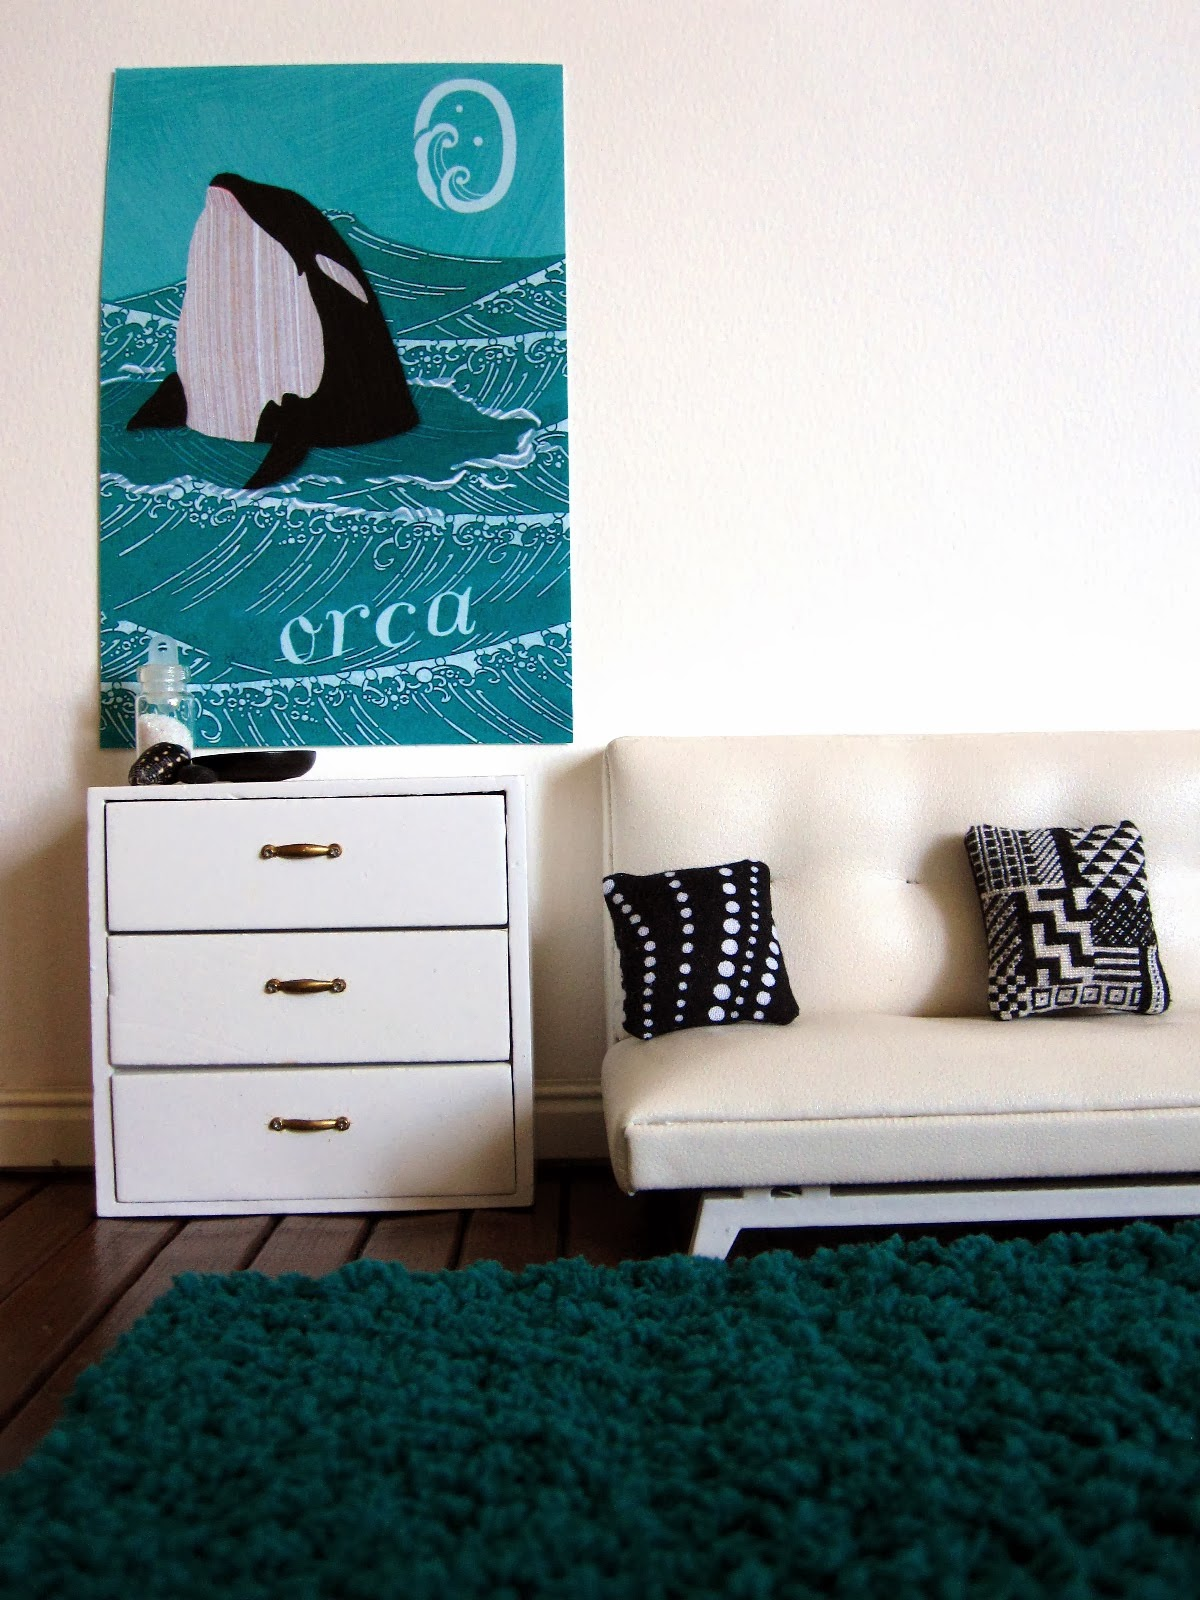 Modern dolls' house lounge room with teal flokati rug, white sofa and drawers, black and white cushions and orca art poster